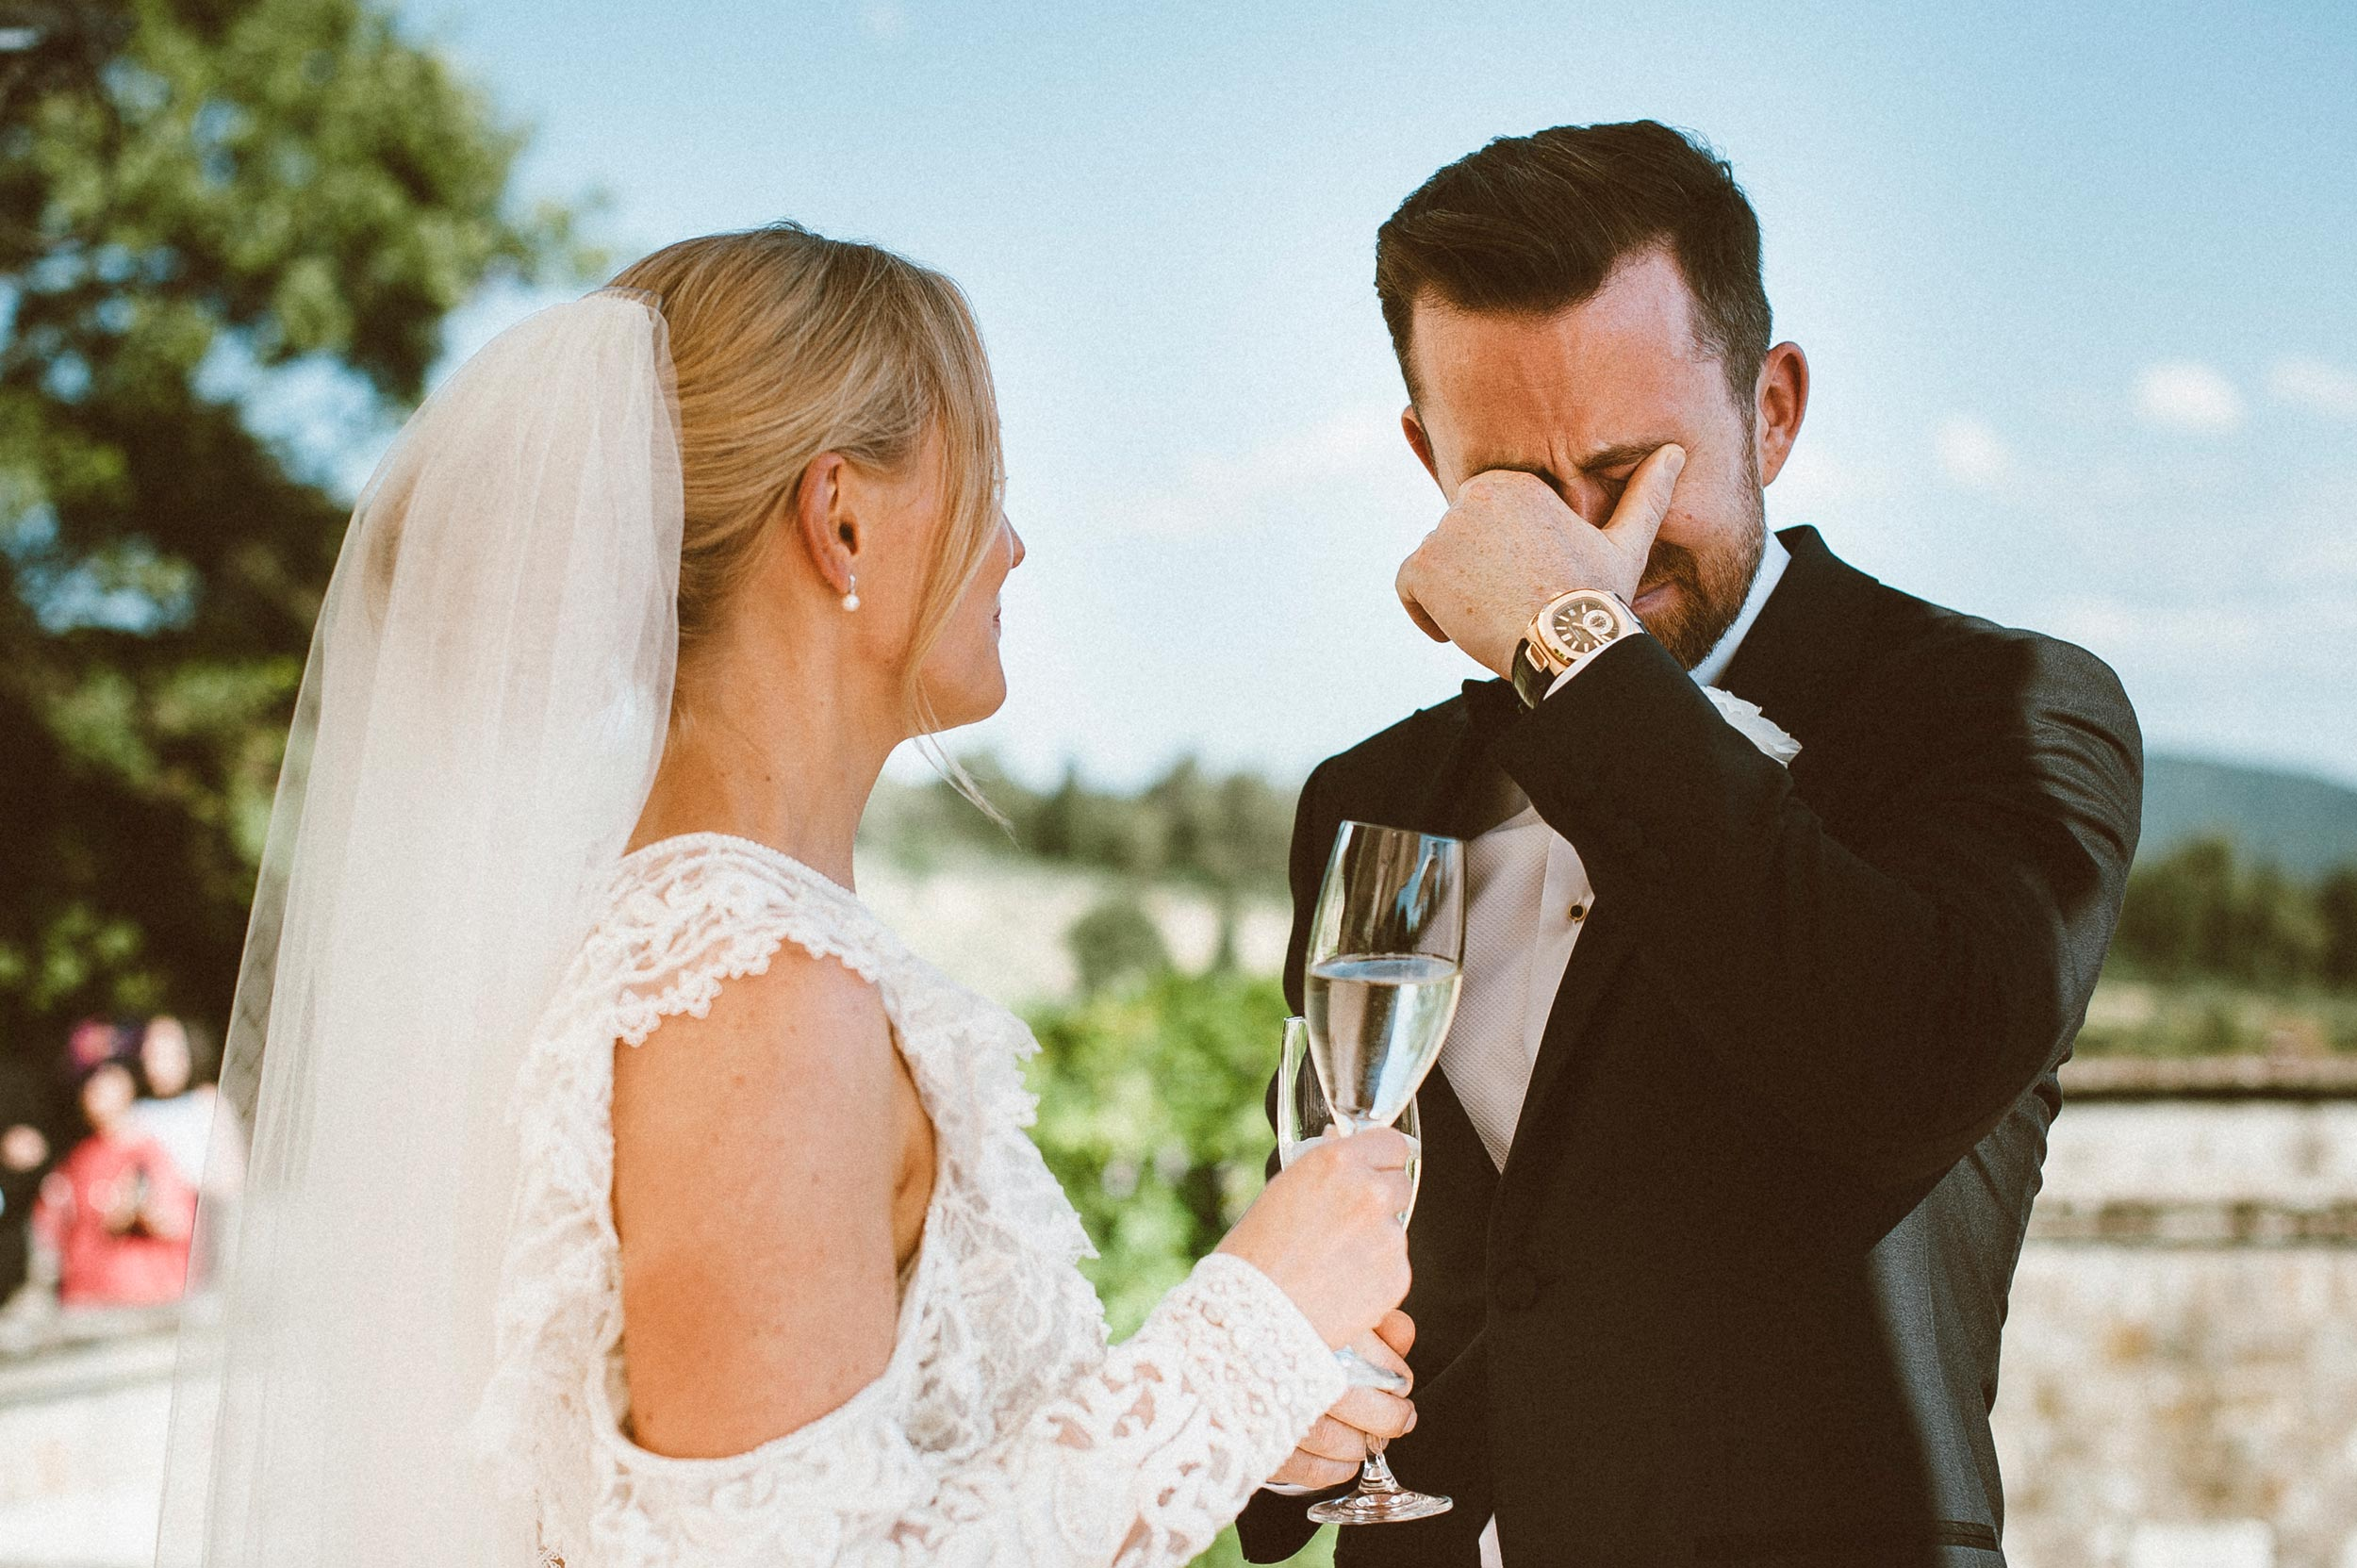 moved-groom-crying-strong-emotion-in-front-of-the-bride-candid-documentary-wedding-photography-by-Alessandro-Avenali.jpg